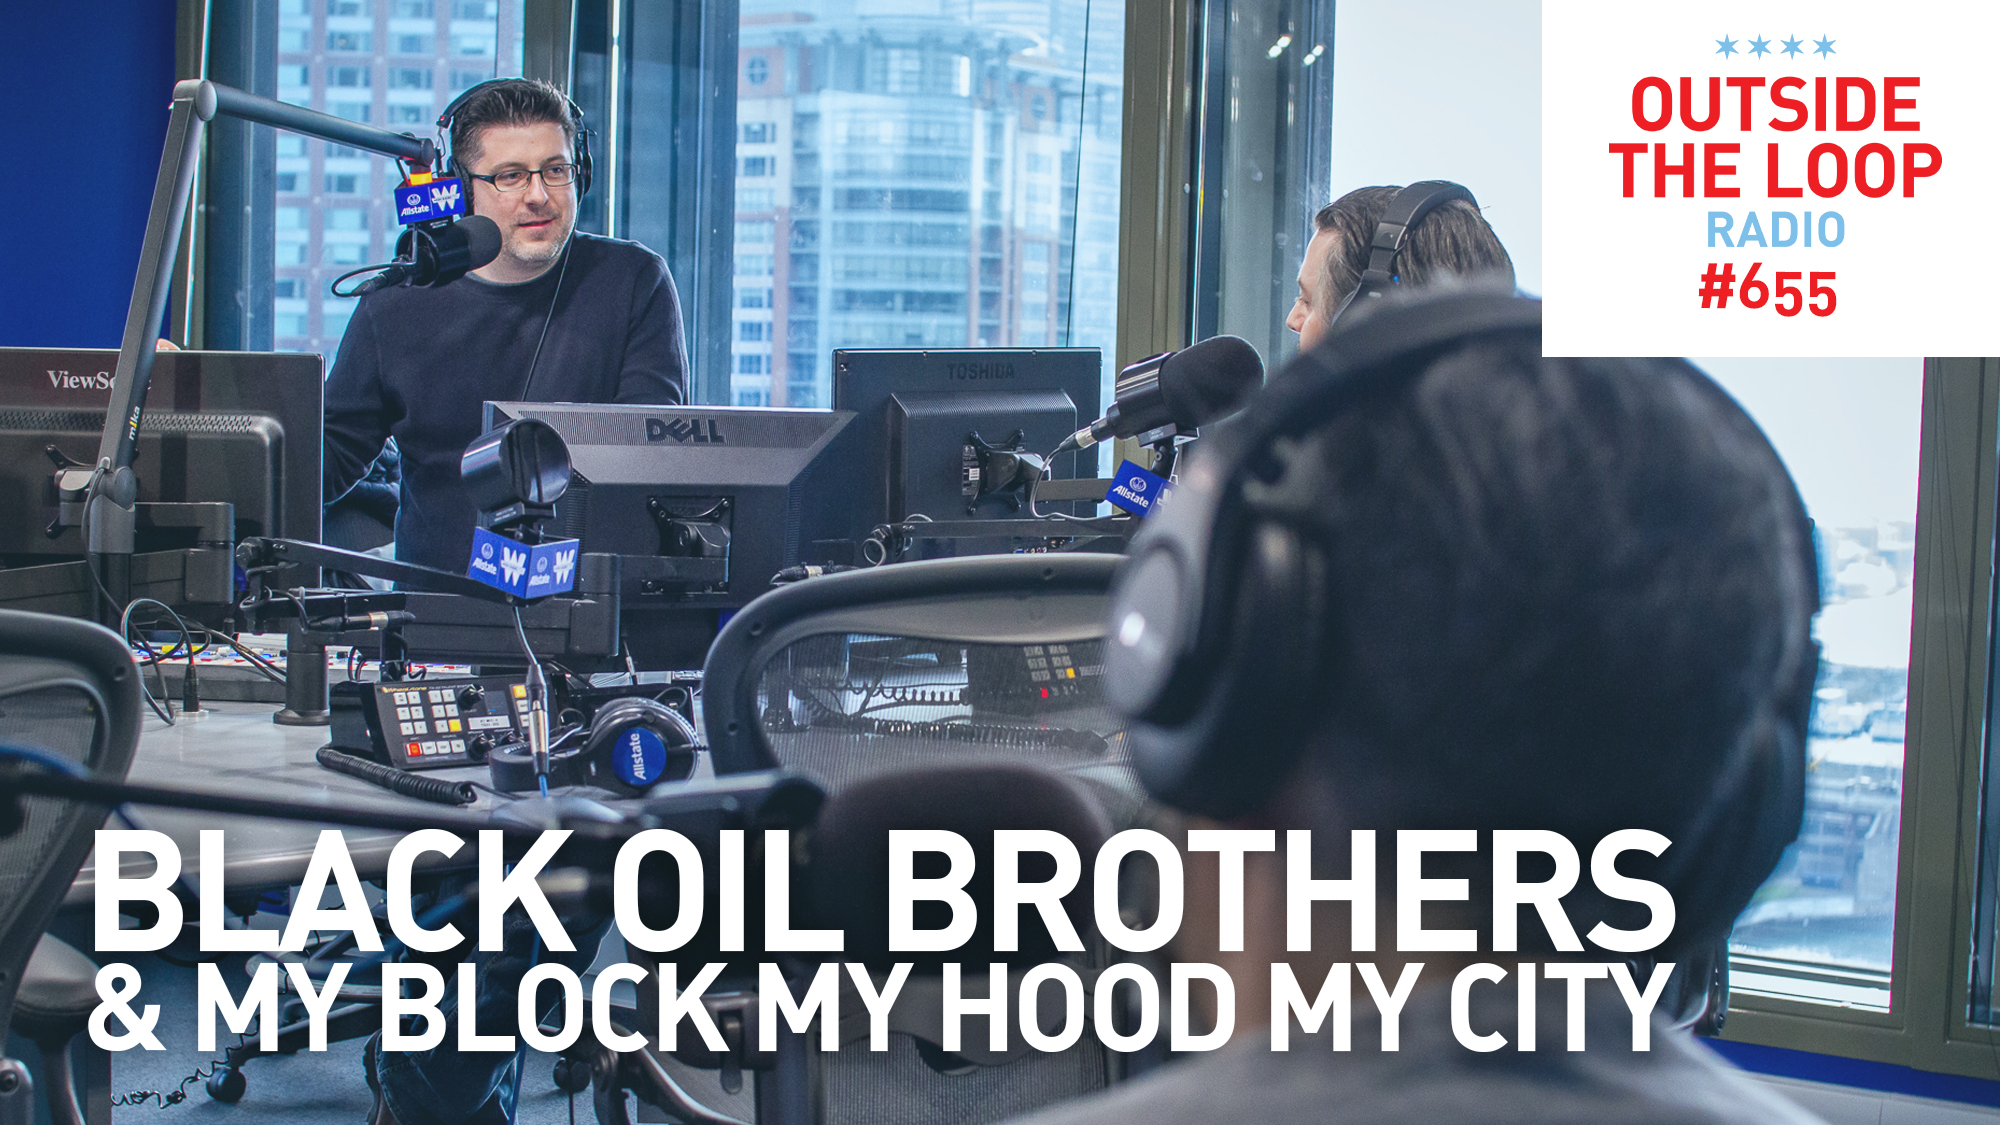 Mike Stephen welcomes The Black Oil Brothers into the WGN Radio studio.